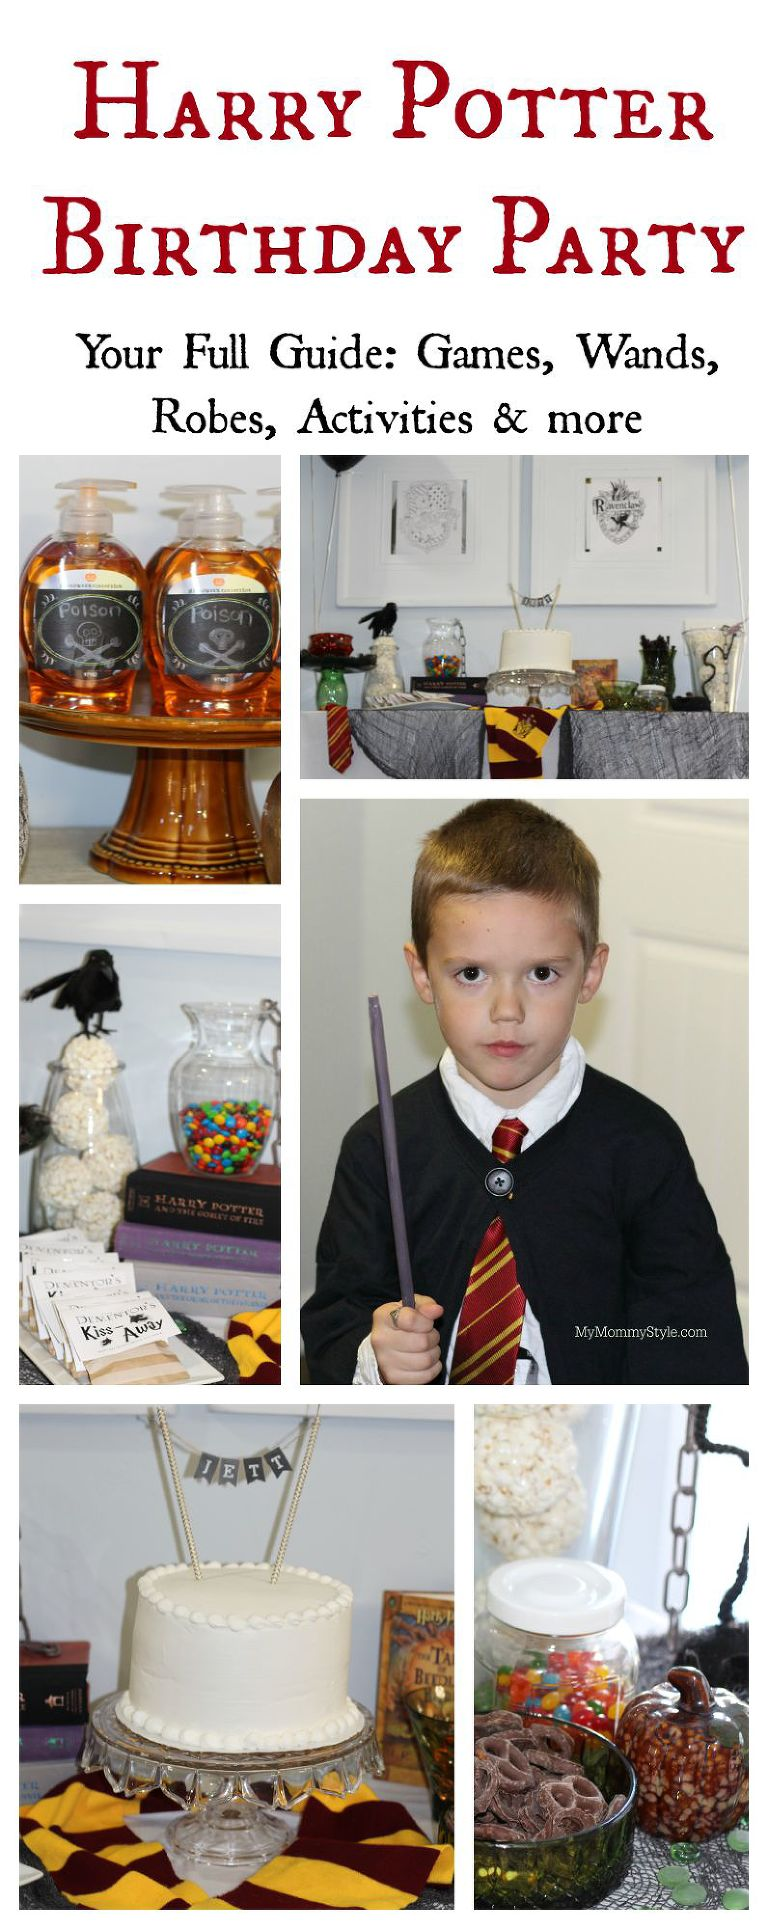 Harry Potter birthday party, harry potter, party, baby harry potter party, mymommystyle